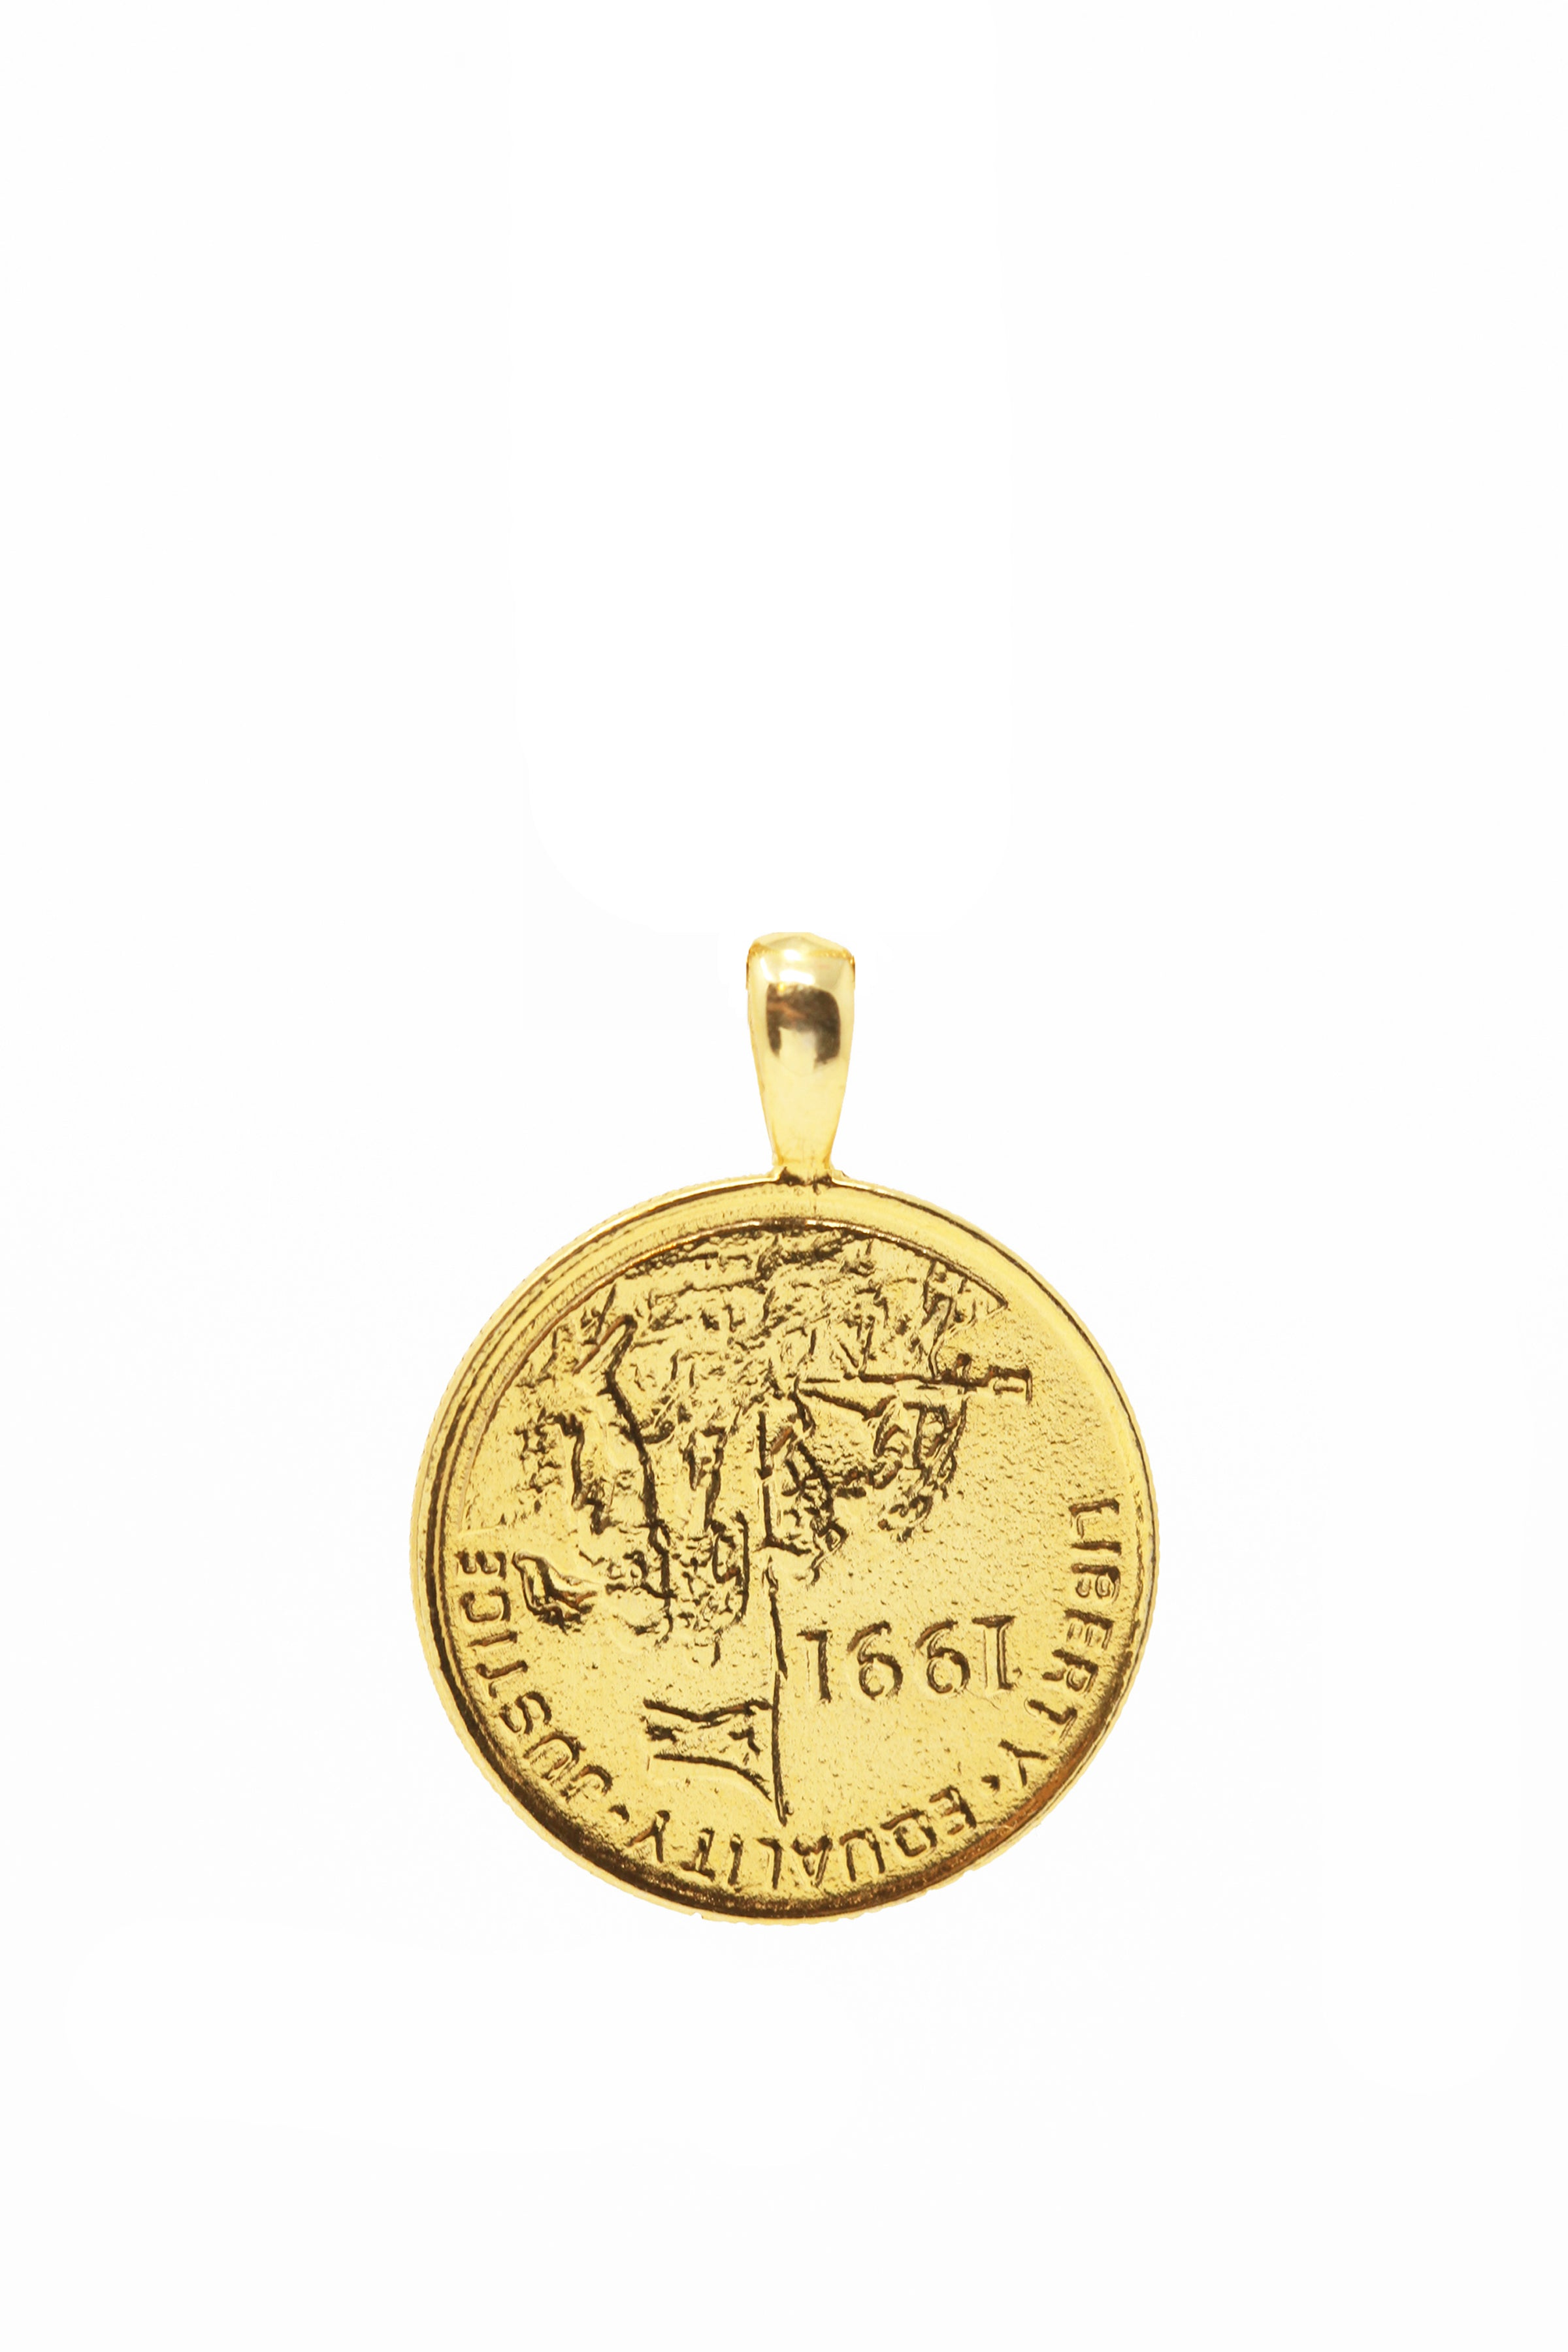 THE ERITREA Leopard Coin Pendant